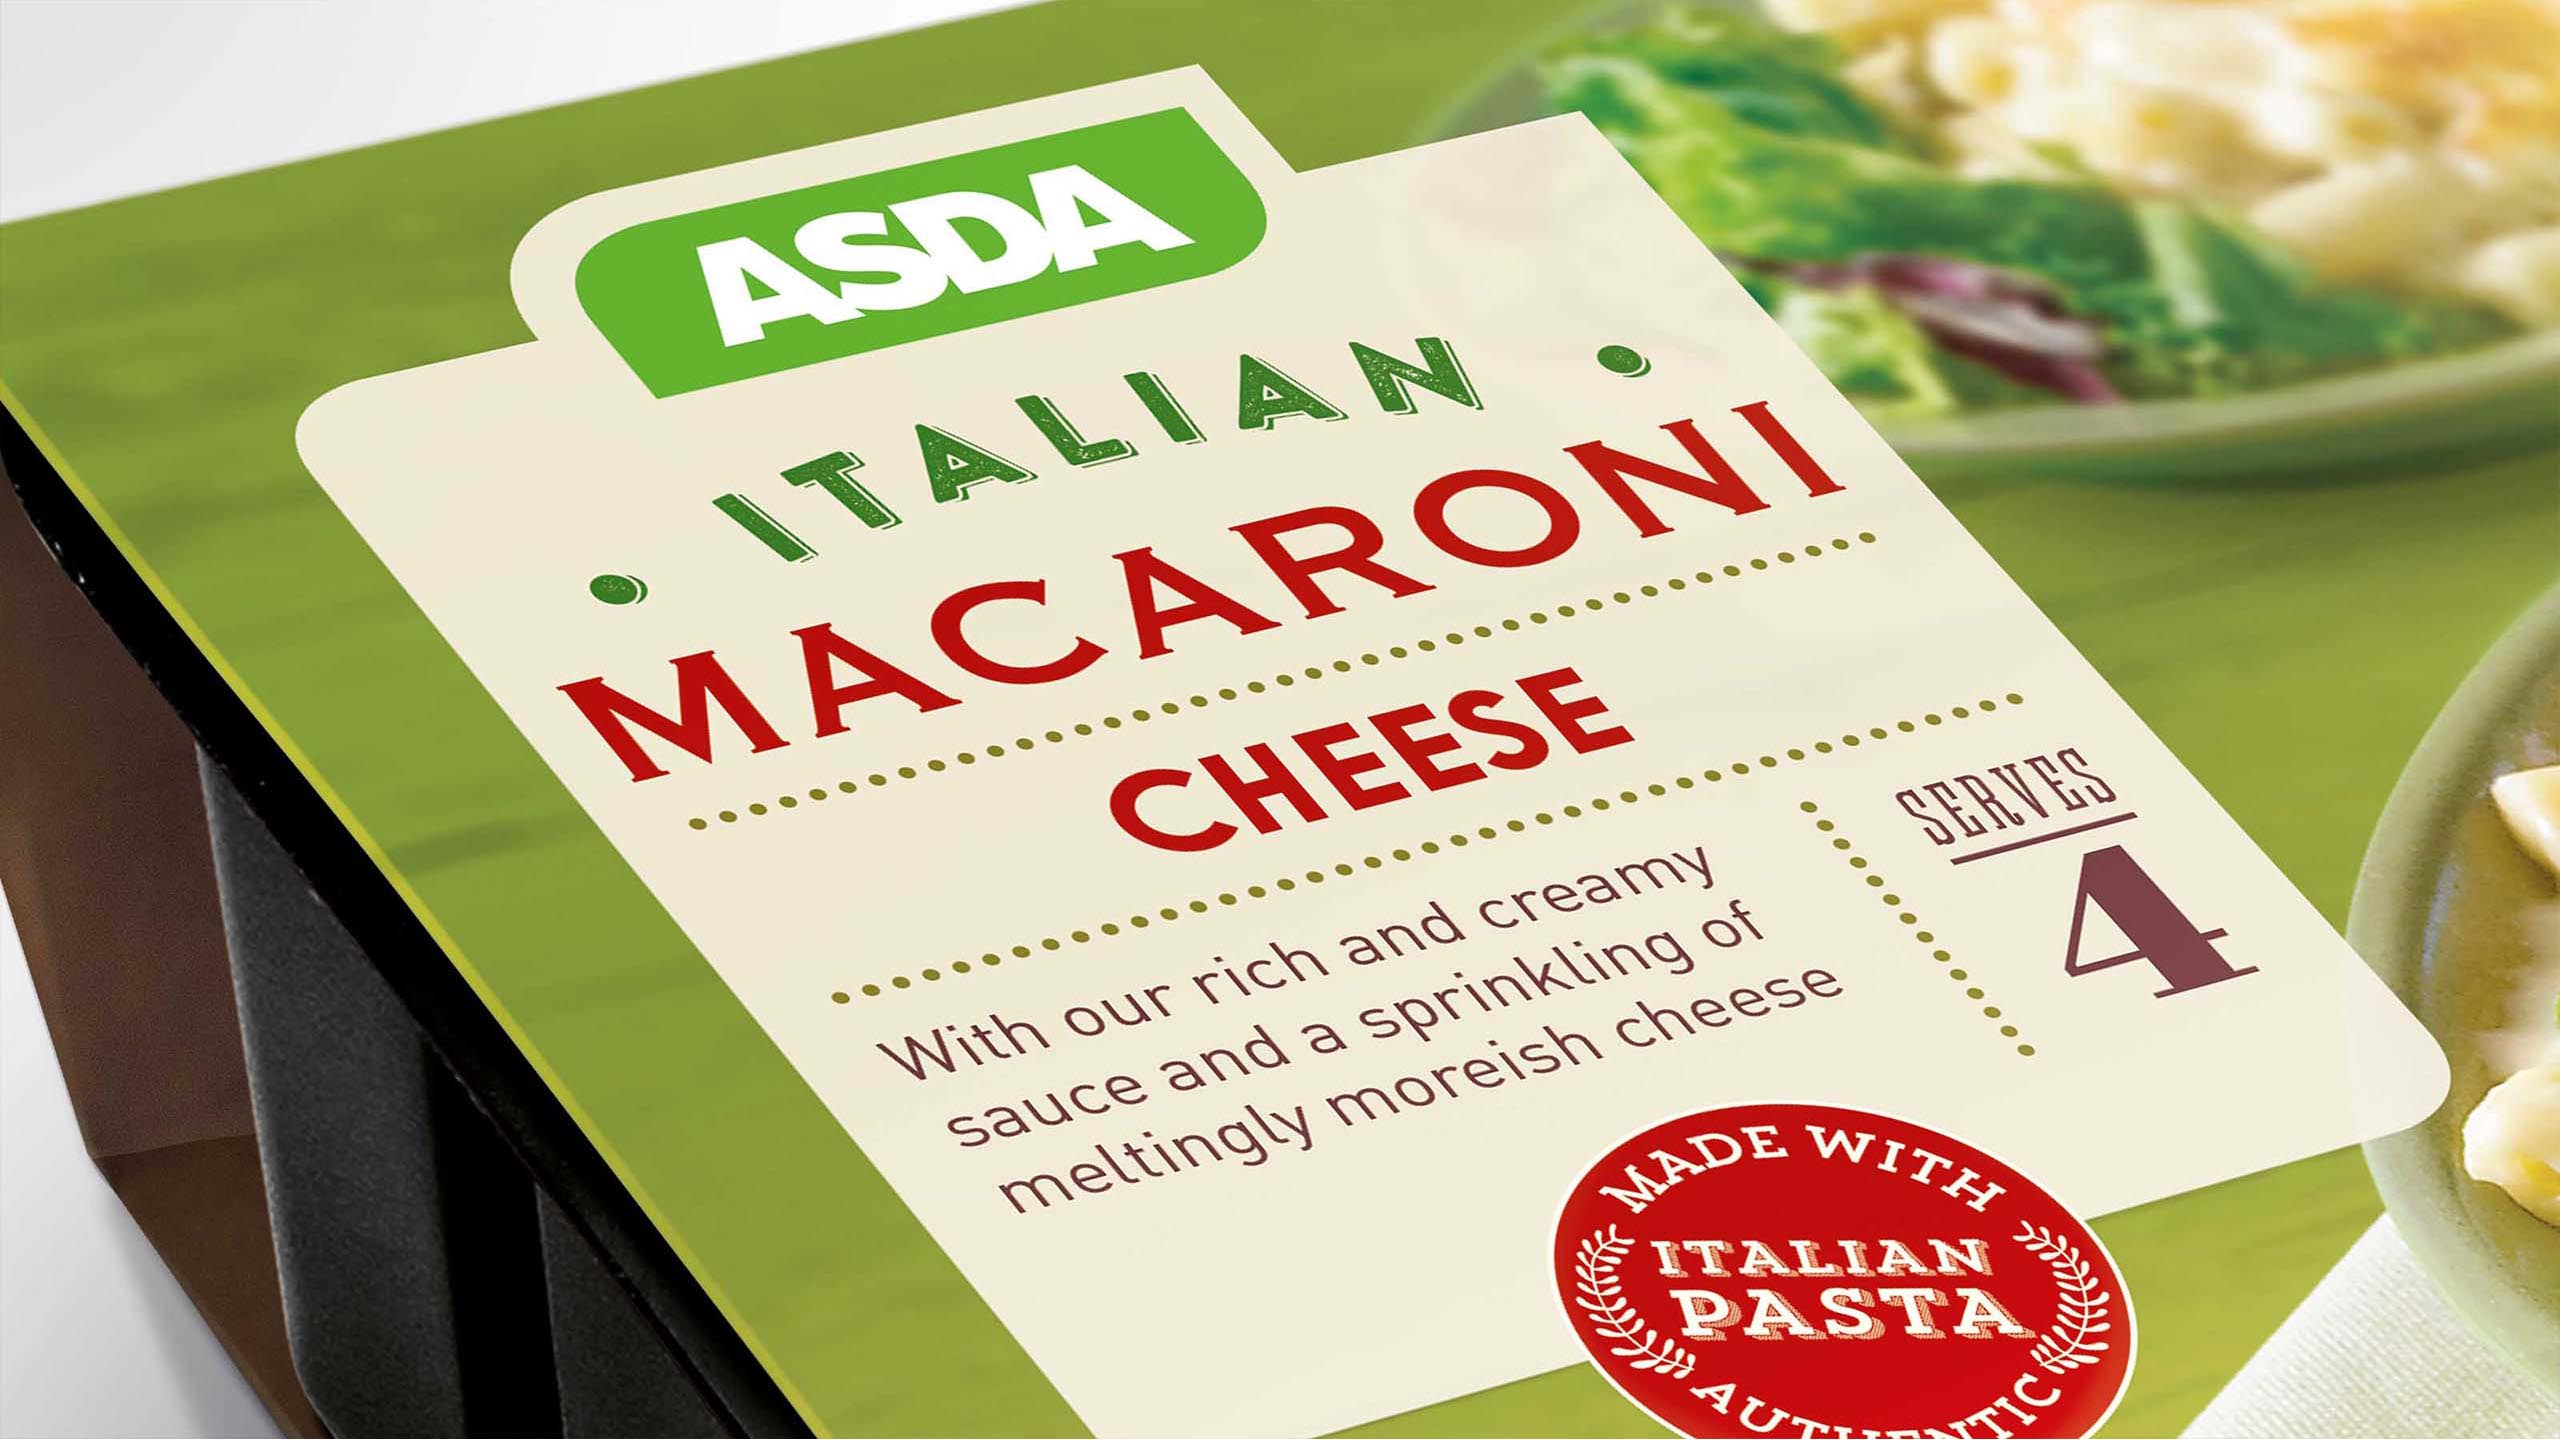 Close up shot of ASDA ready meal packaging